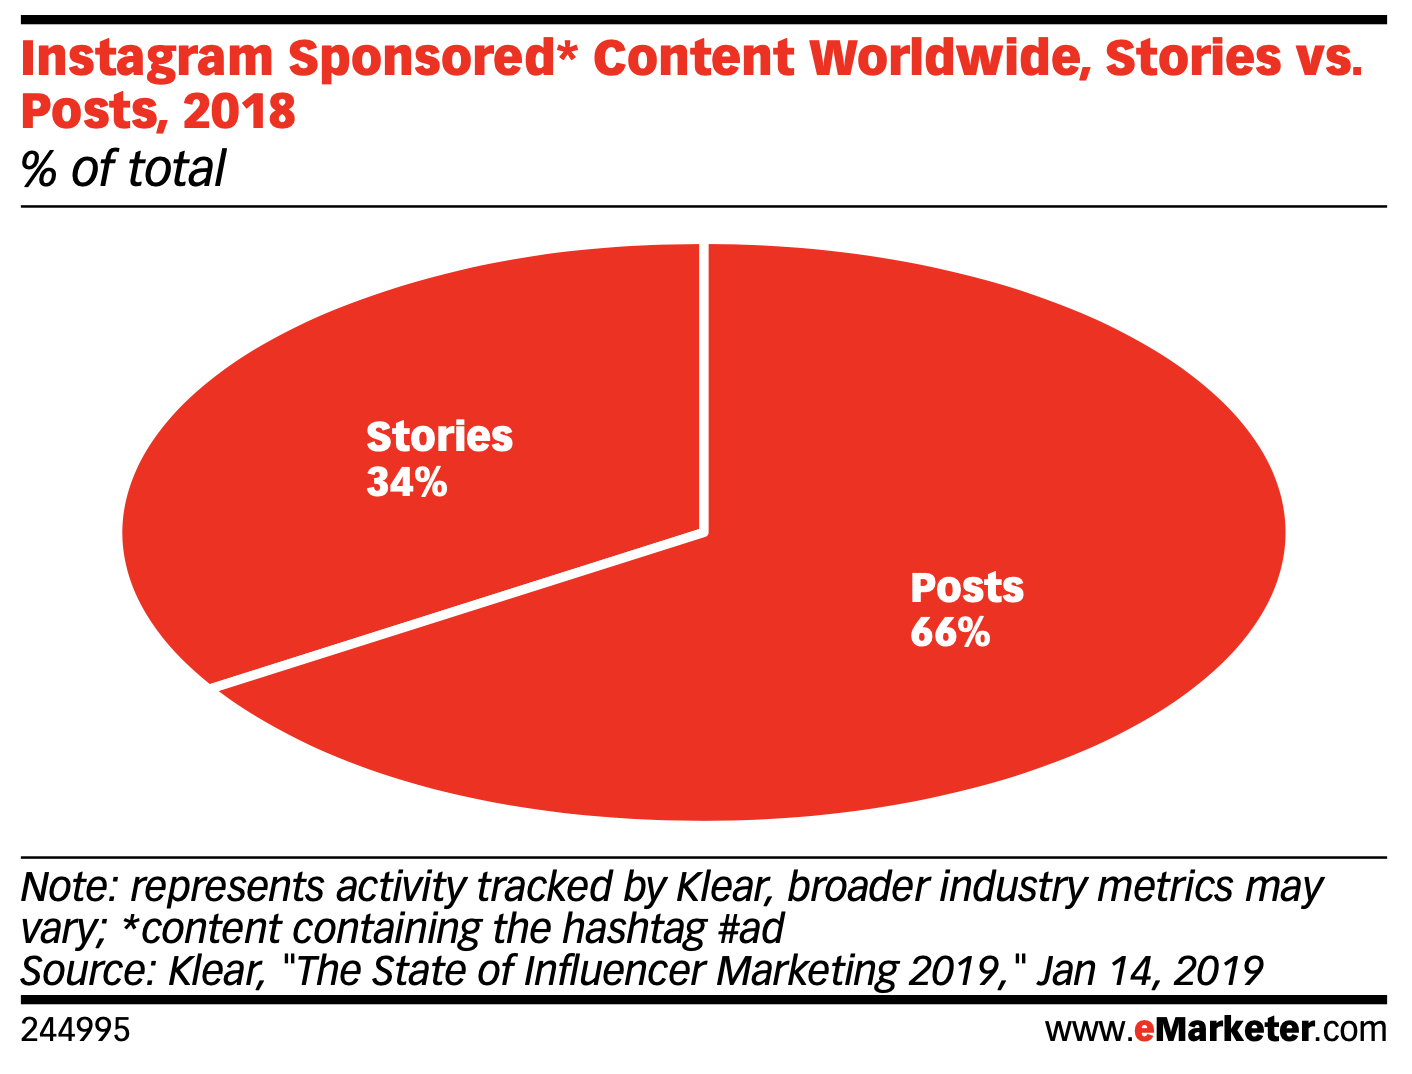 instagram sponsored content: stories make up 34% versus 66% posts